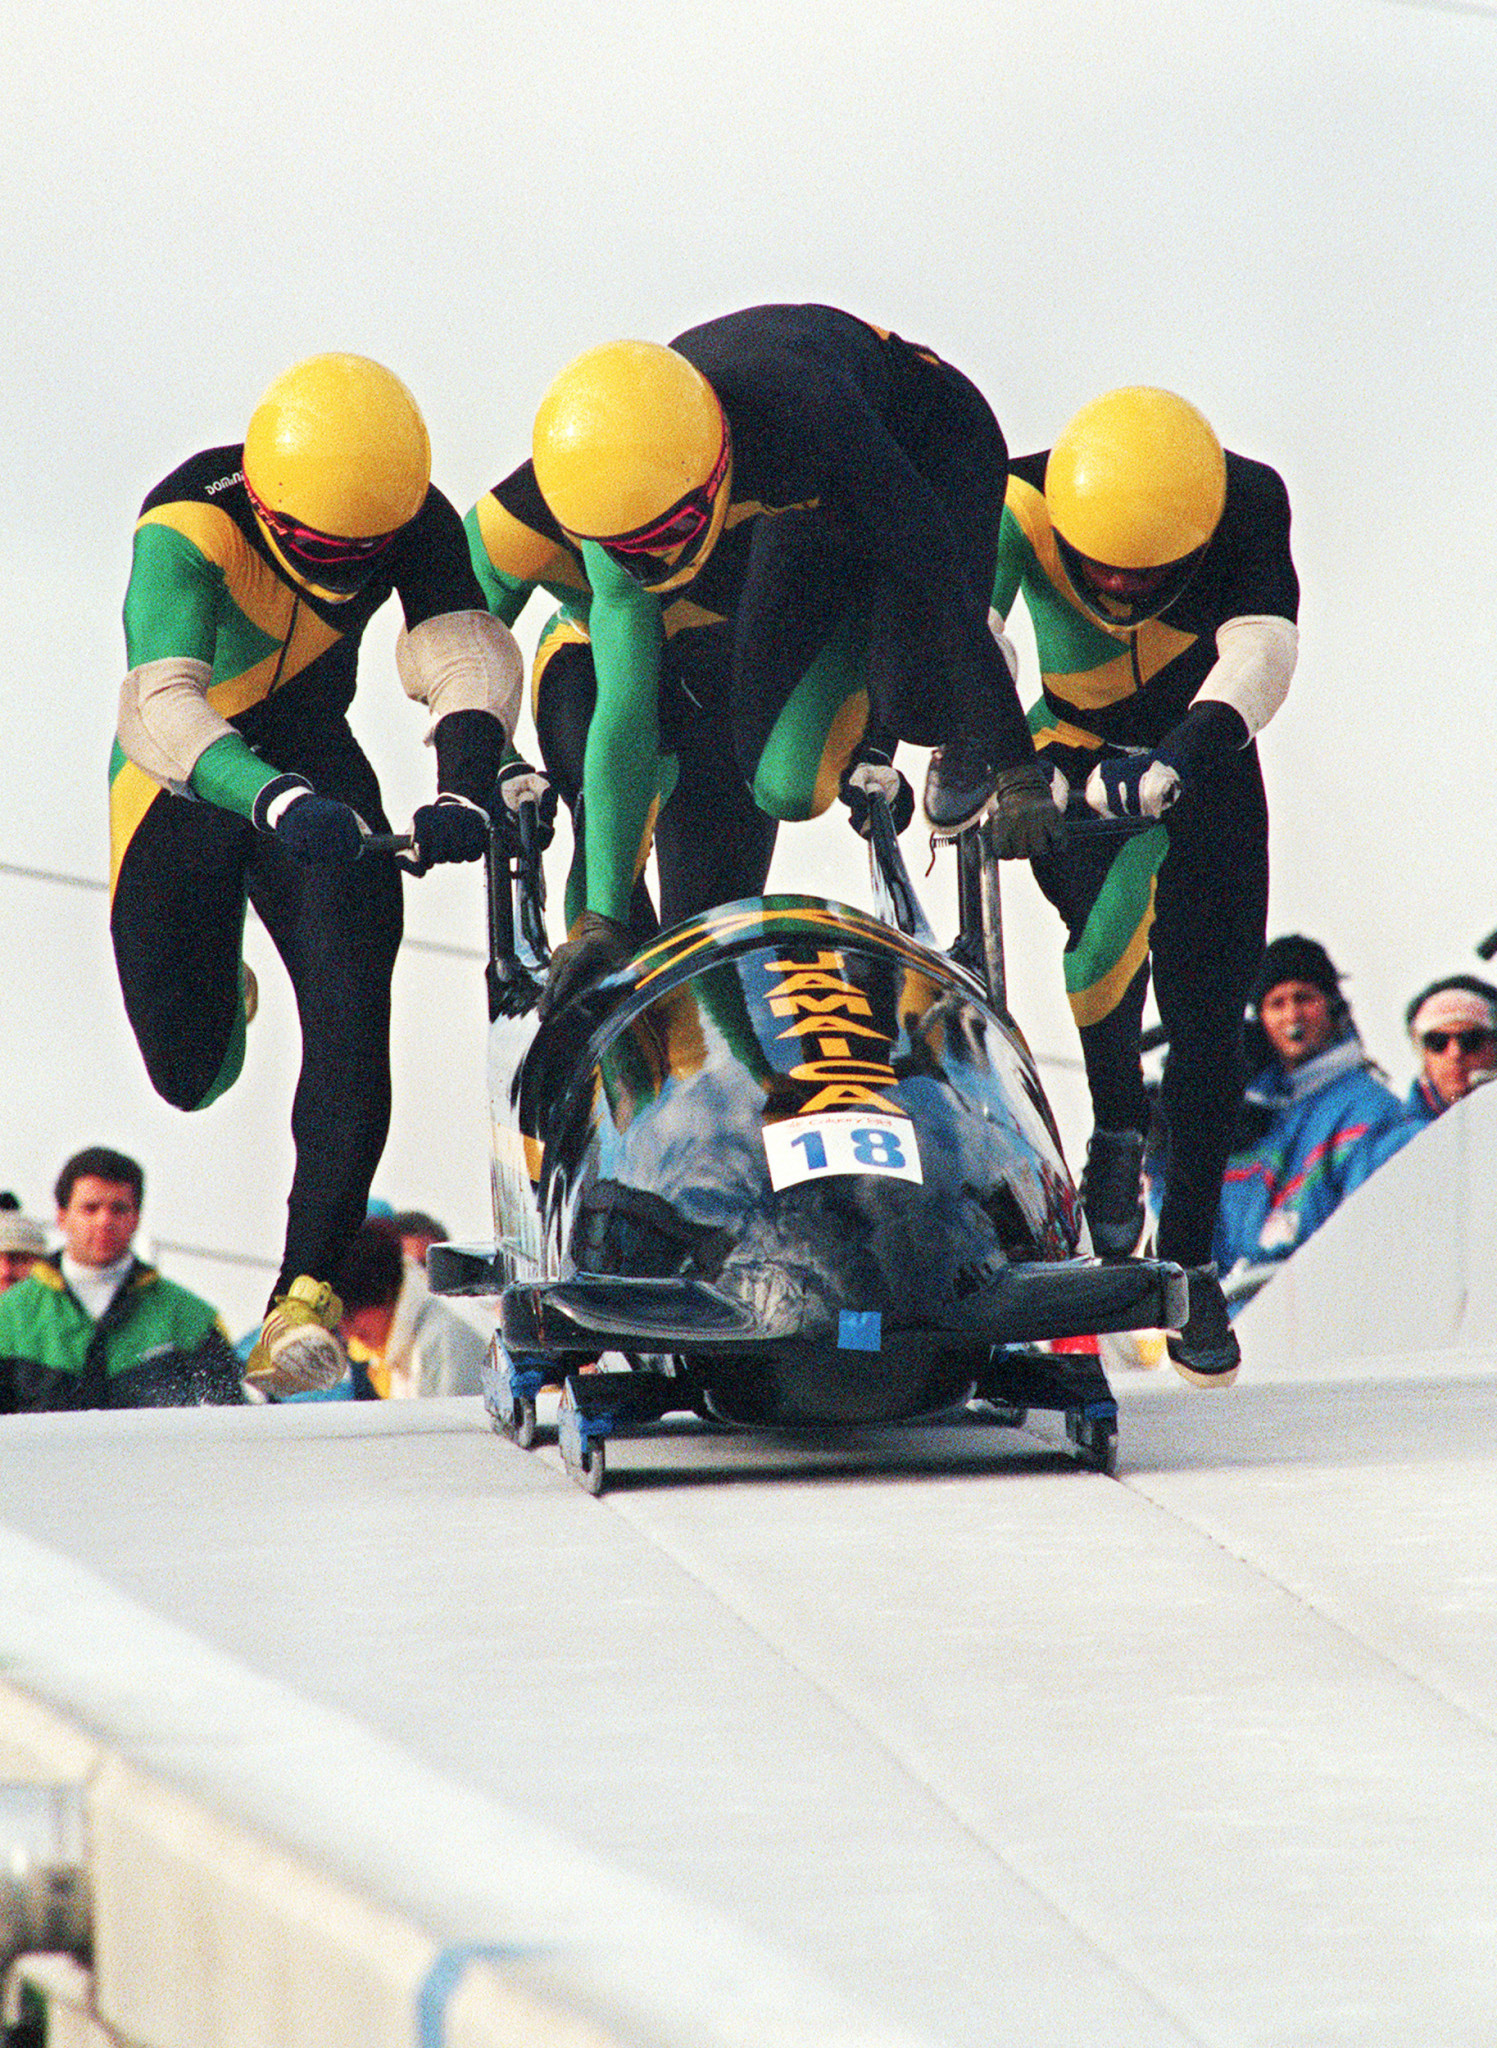 Jamaica's bobsleigh team get their Calgary 1988 Games challenge underway - they finished last, but they started something big...including a cult Hollywood move Cool Runnings ©Getty Images